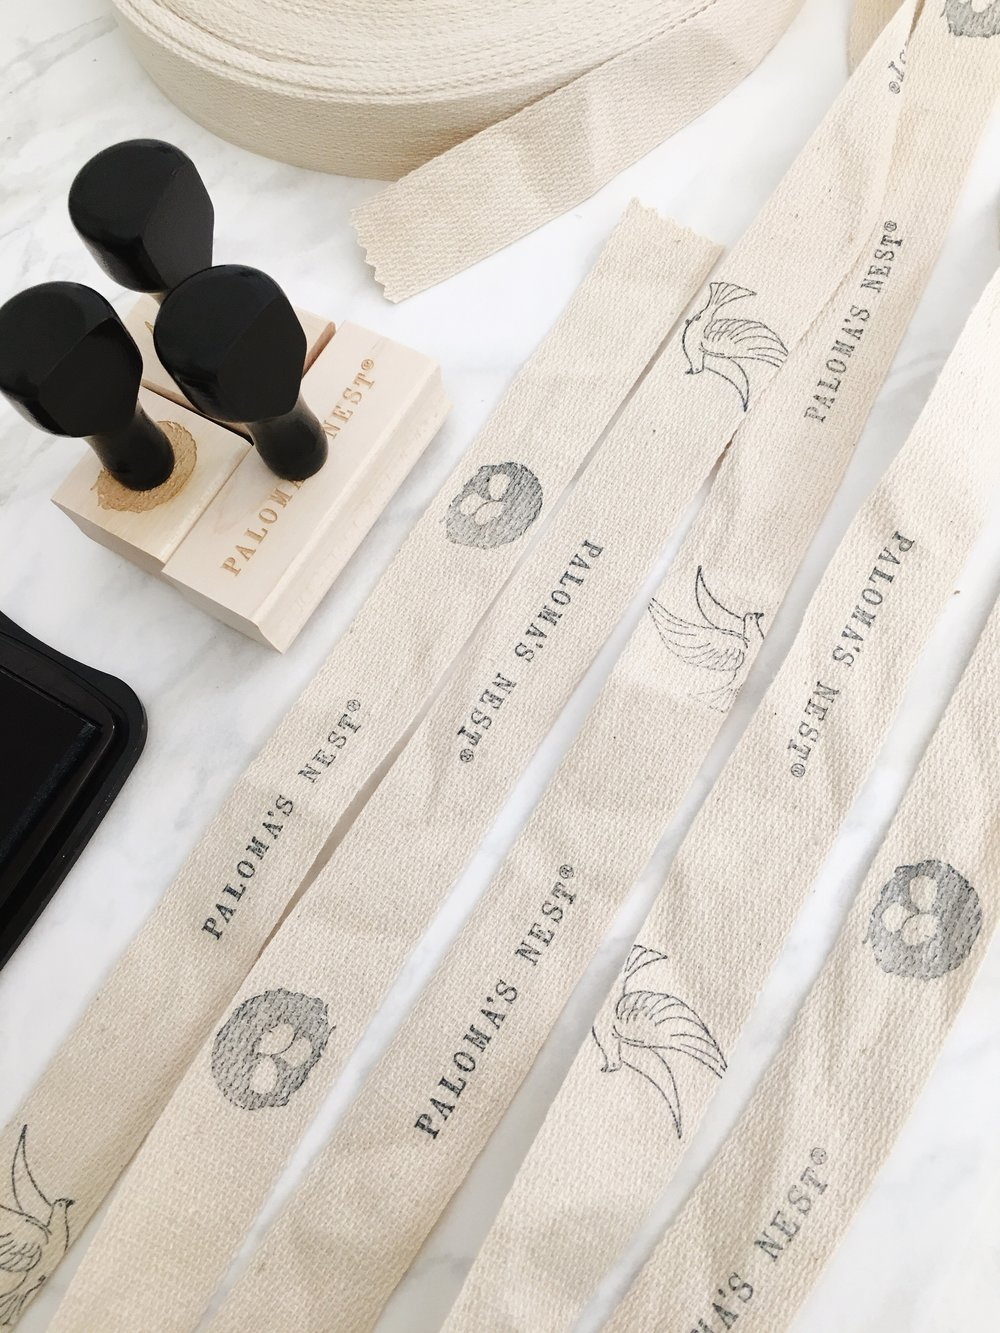 Creatiate Rubber Stamps Pretty Packaging Project 23.jpg